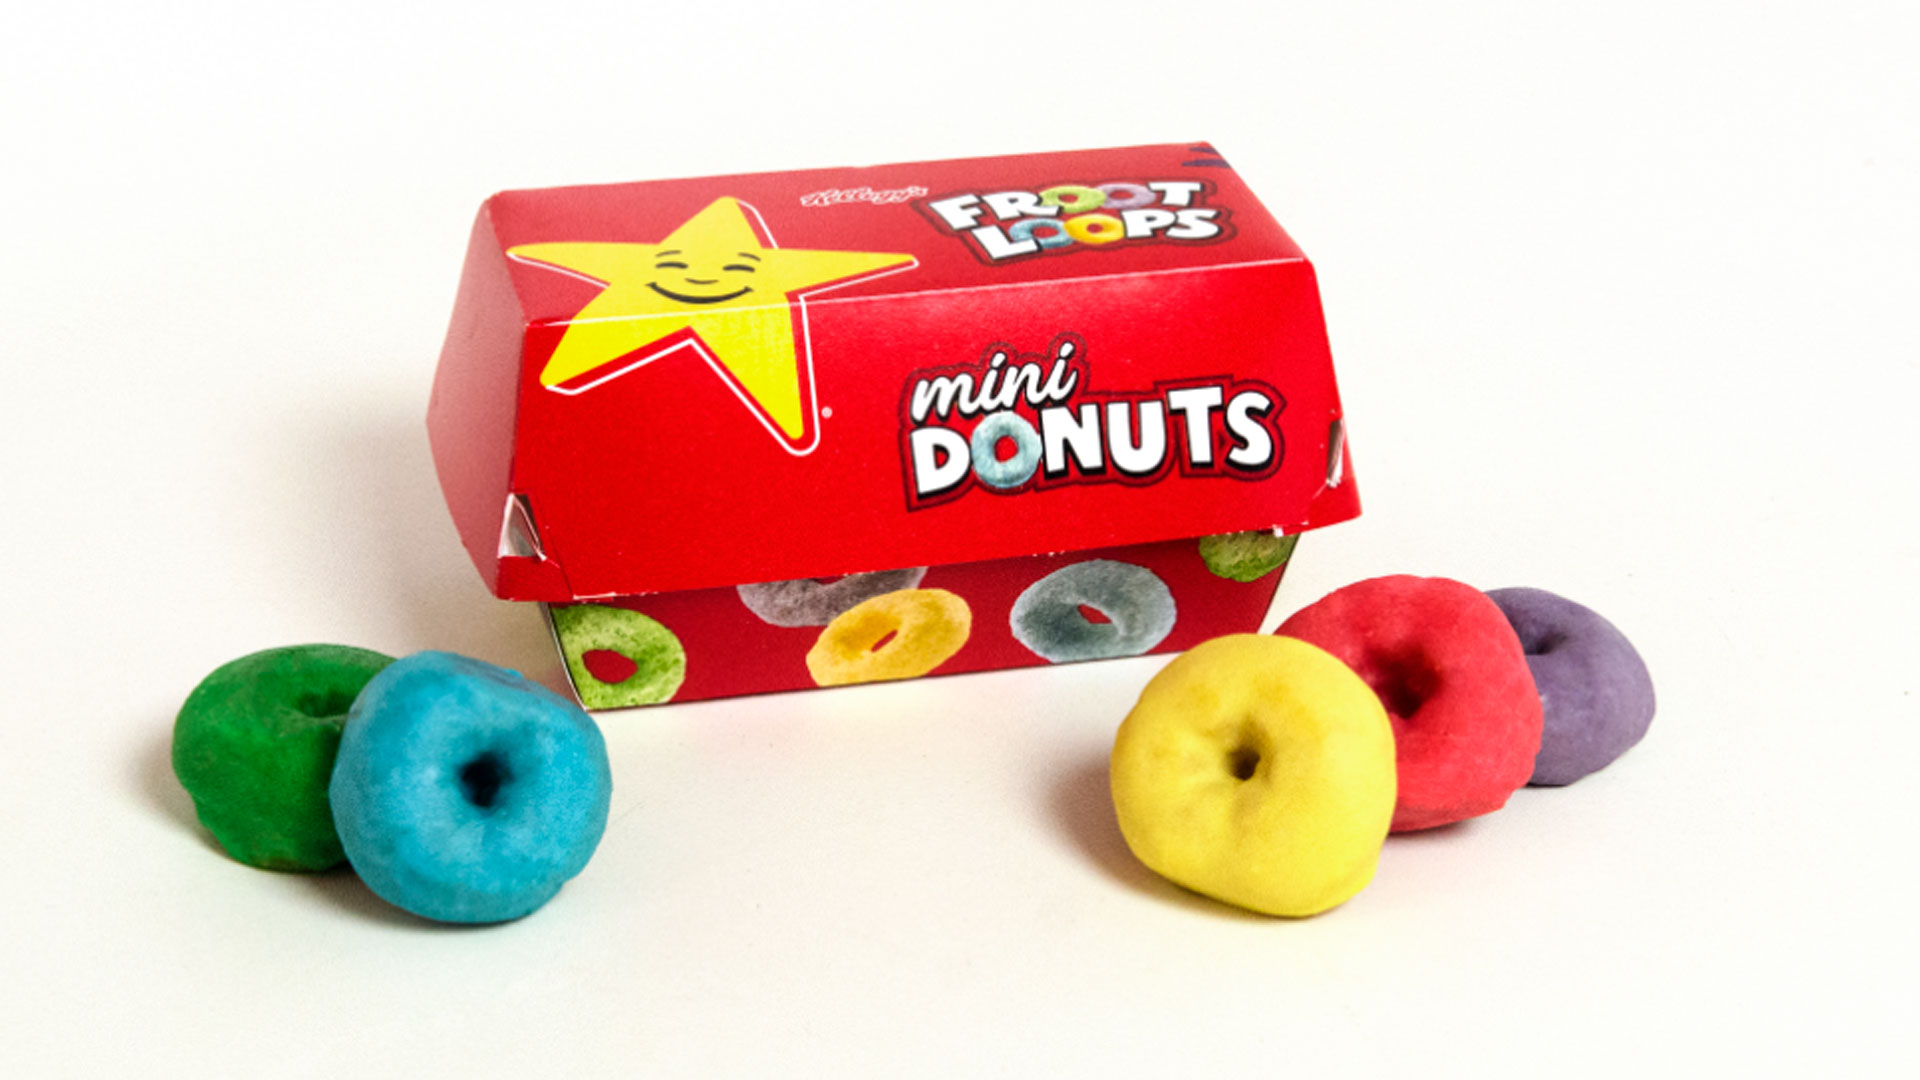 FROOT-LOOP-DONUTS_1535506360625.jpg